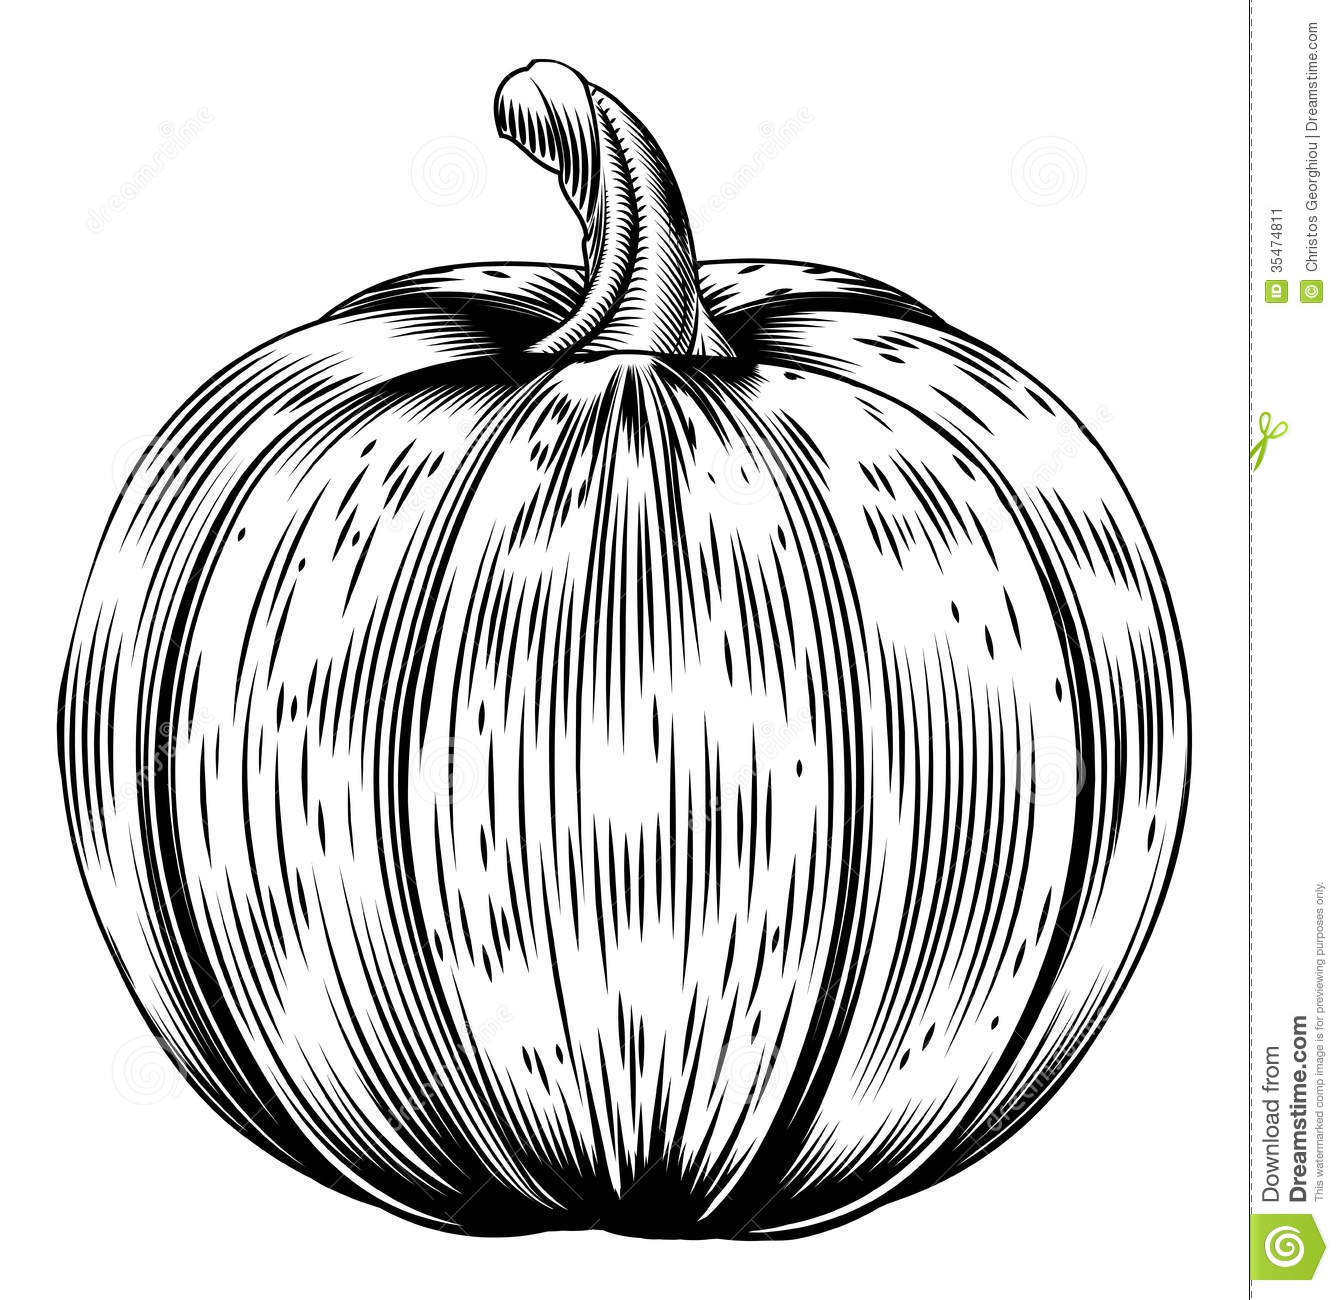 vintage pumpkin clip art - photo #21